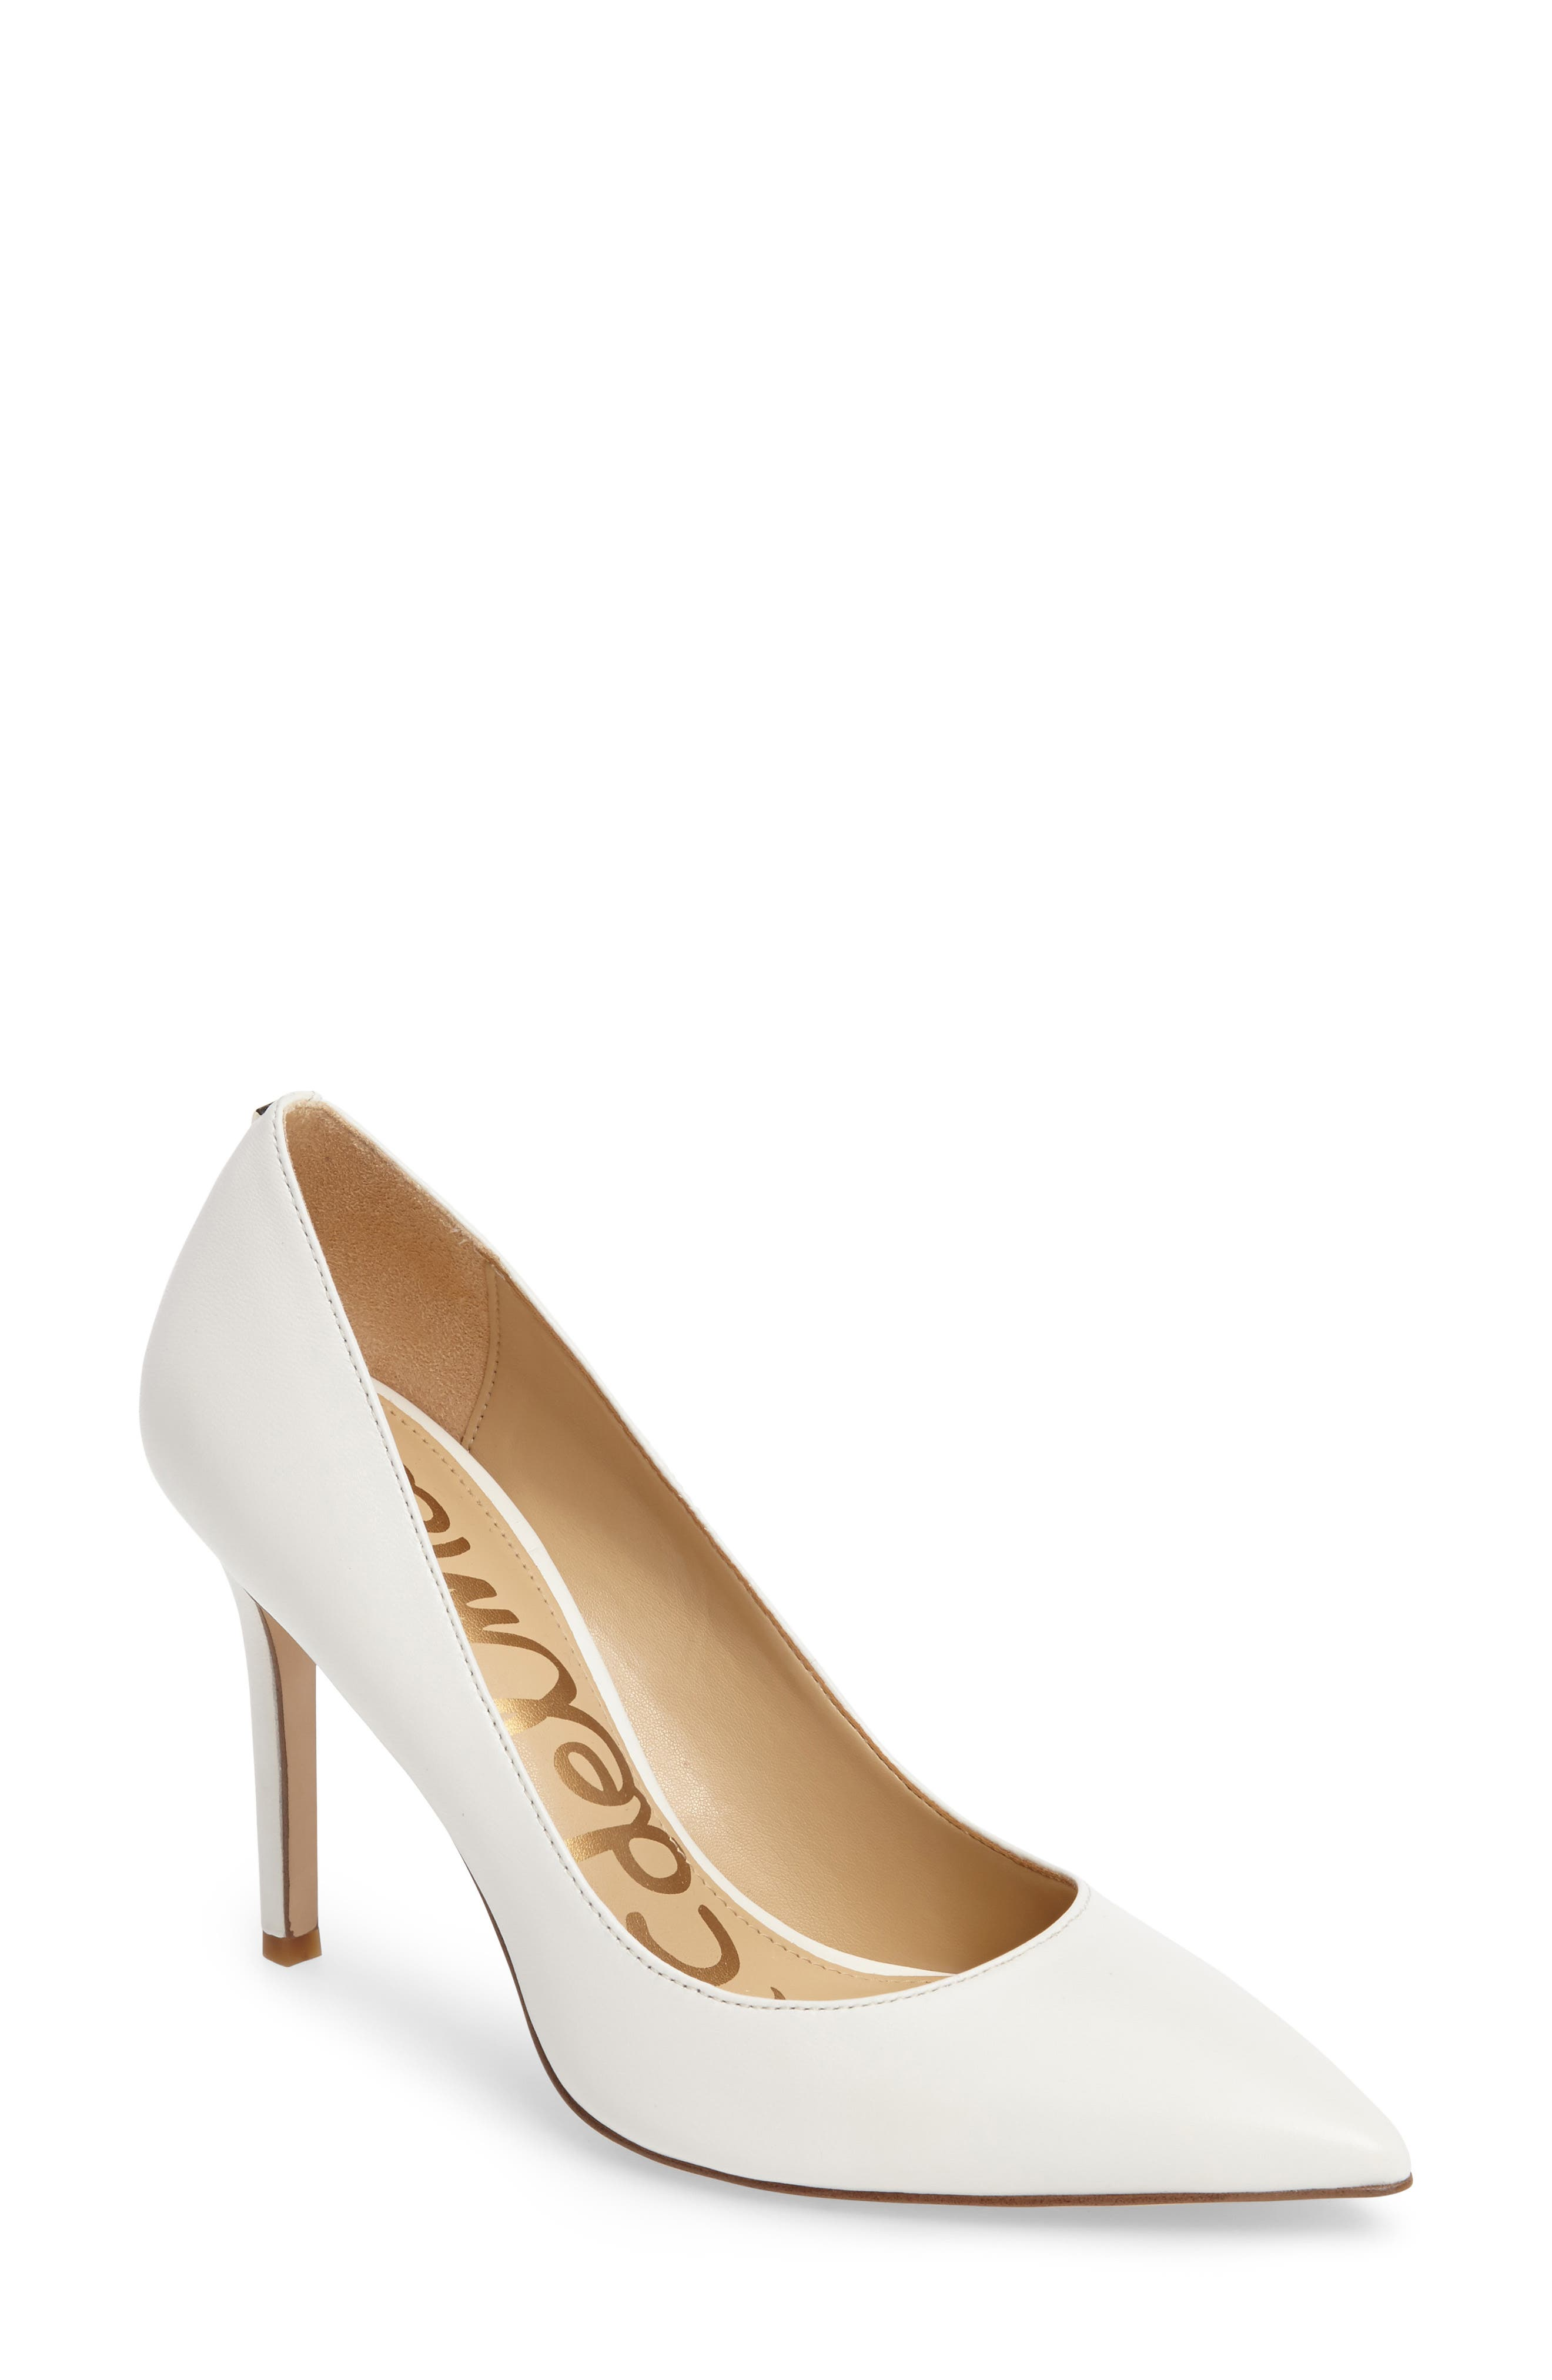 Of The Pumps Fashion Unisex Bright N47904466